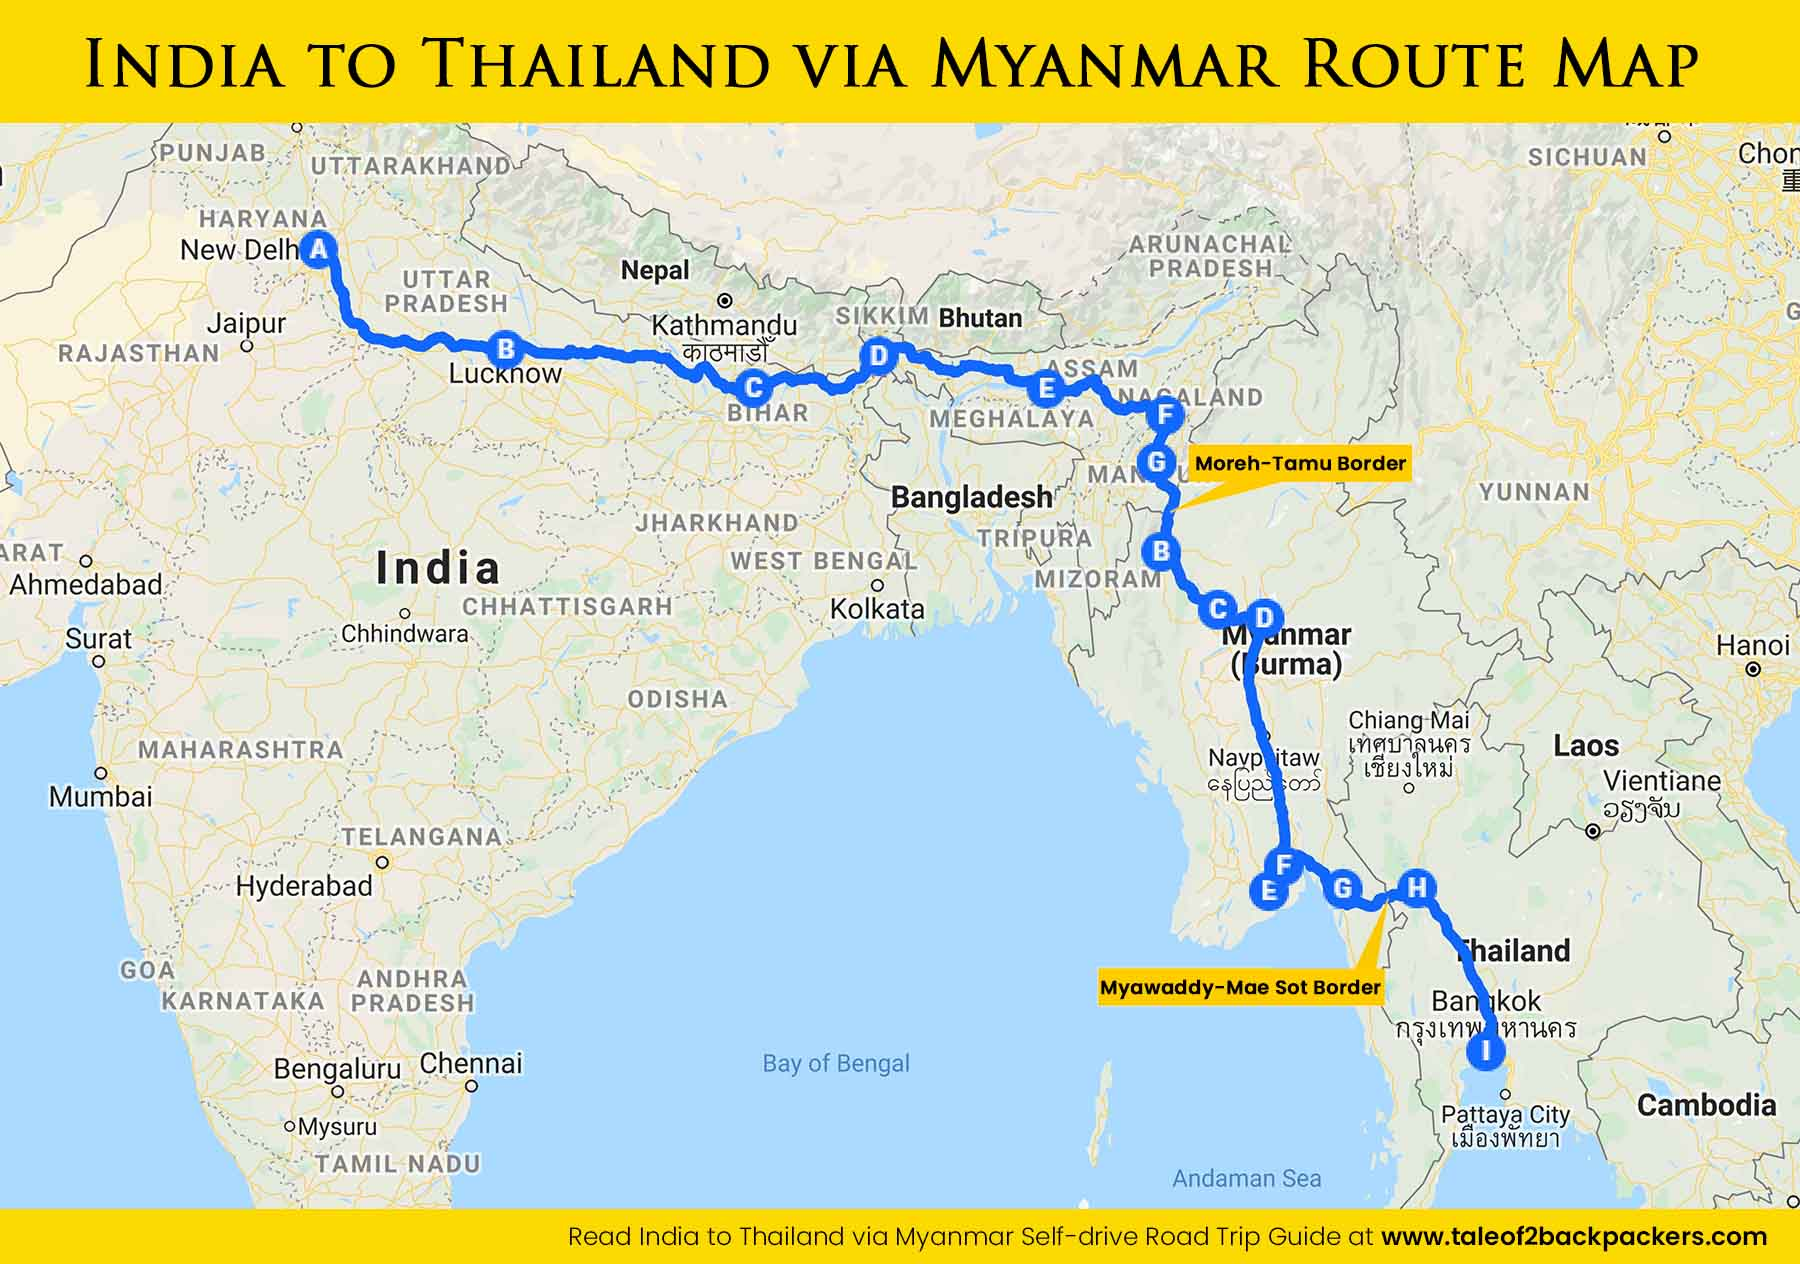 India to Thailand by Road via Myanmar route map